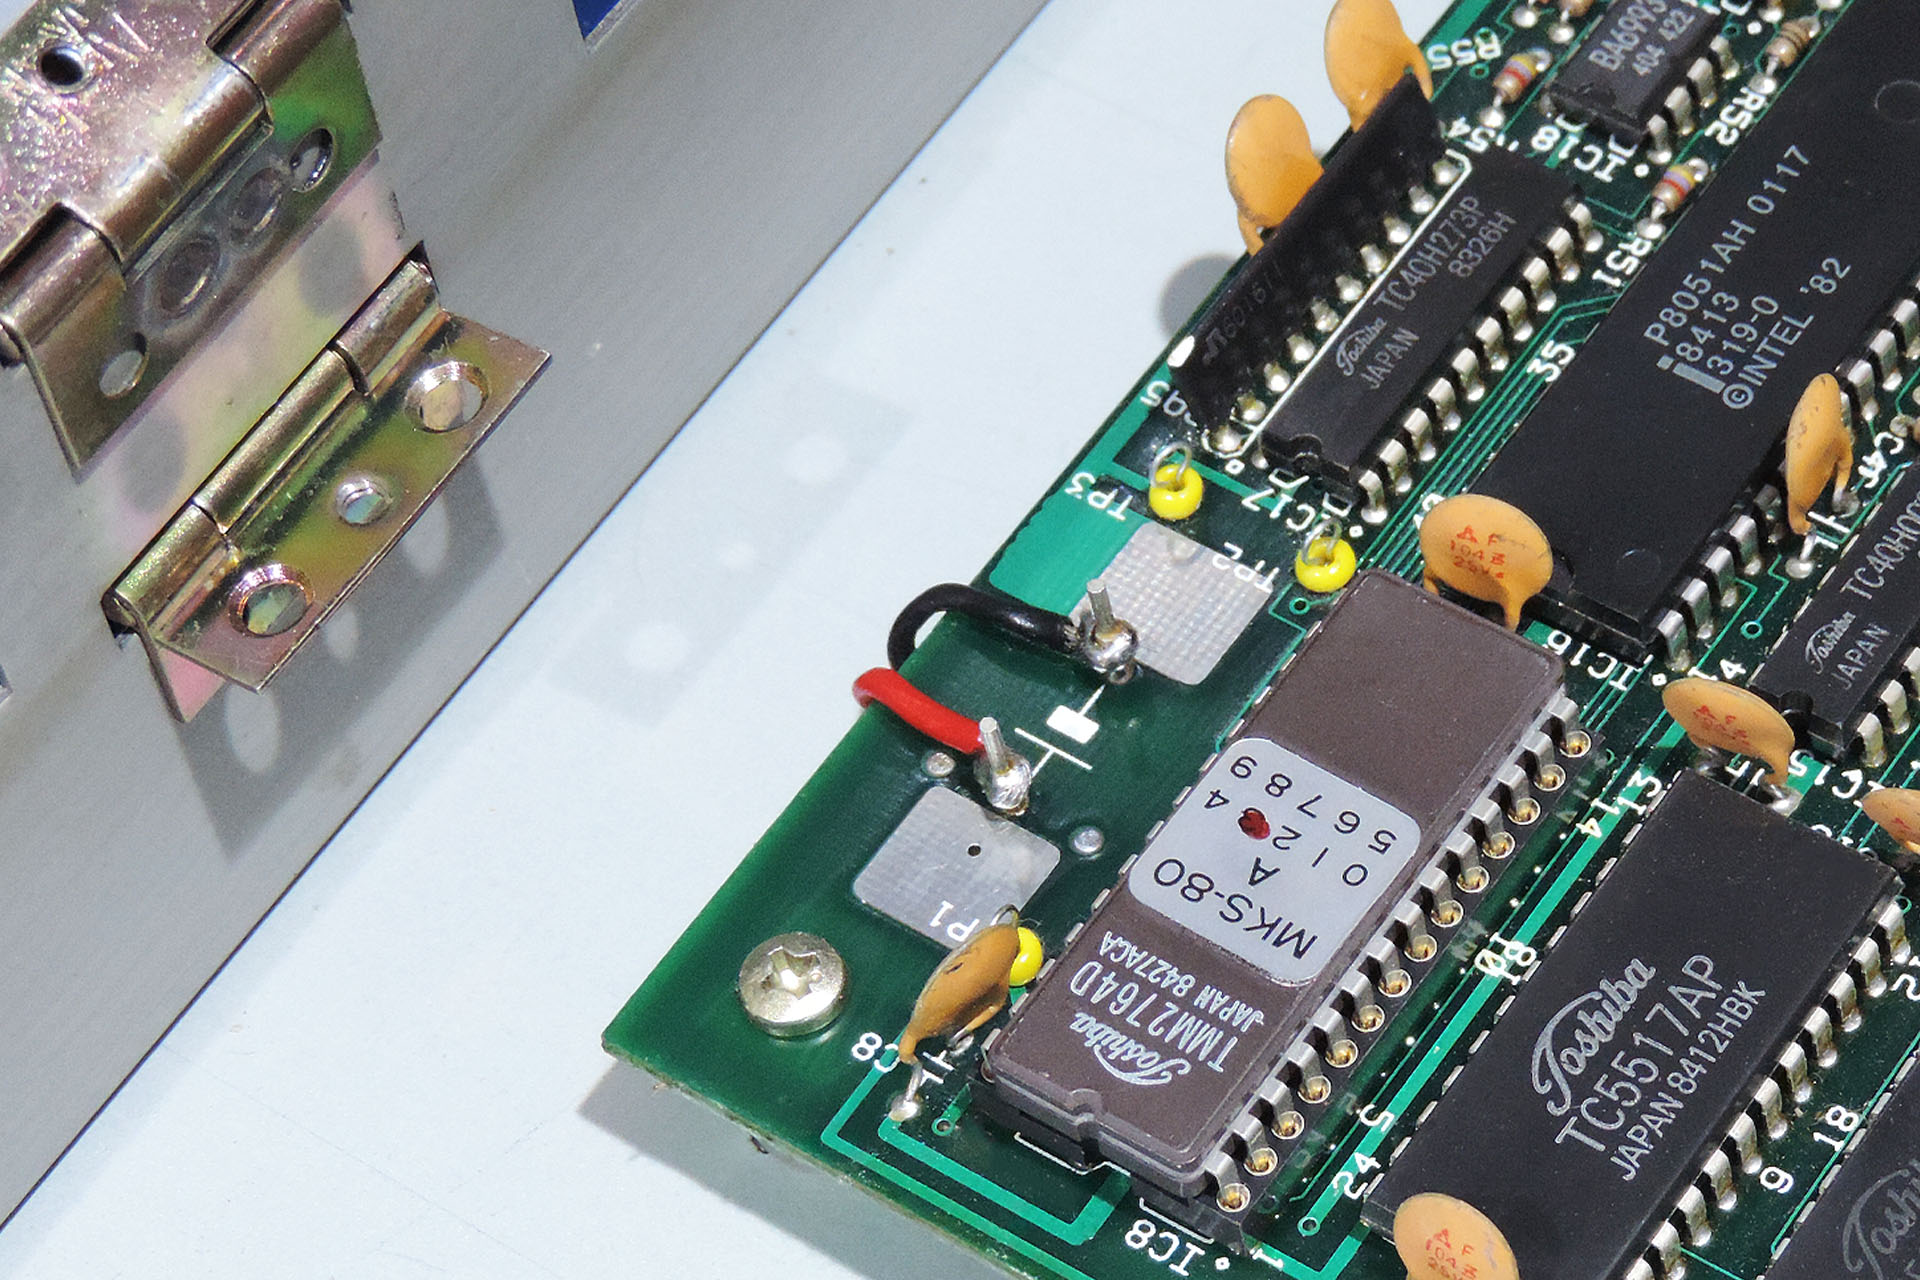 Live Forever battery mod on MKS-80 - CPU board connection